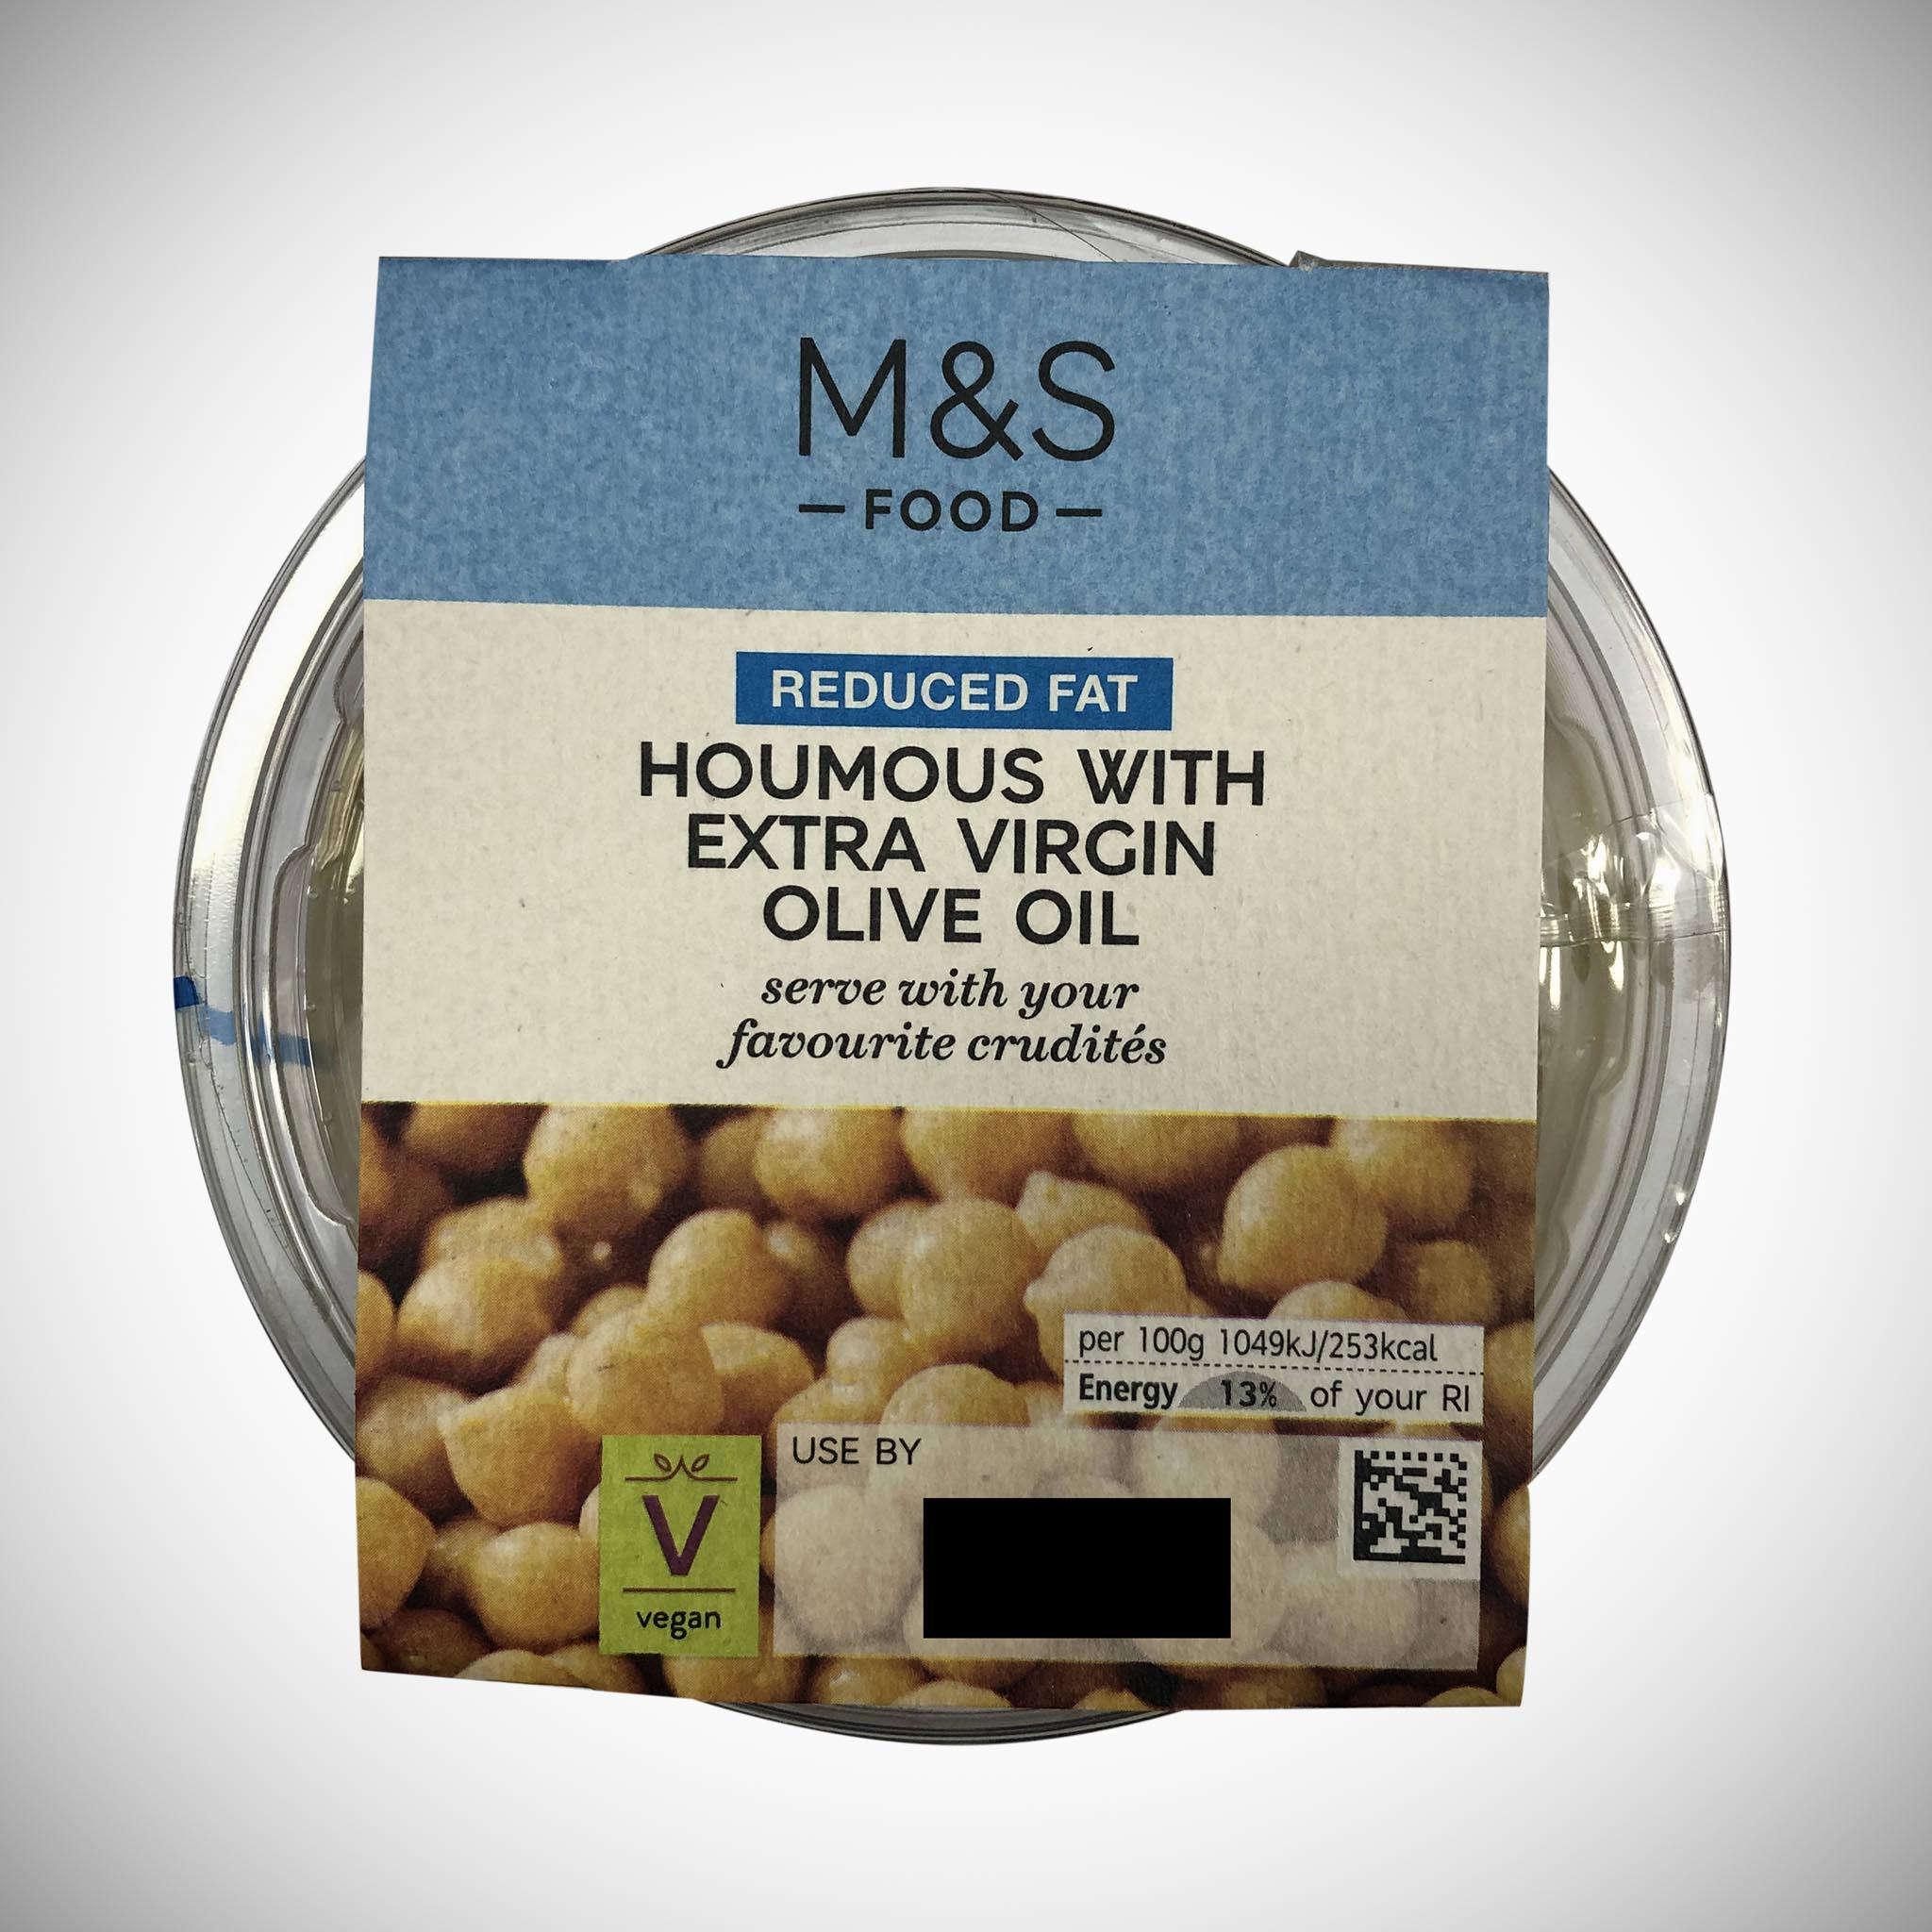 Reduced Fat Extra Virgin Olive Oil Houmous